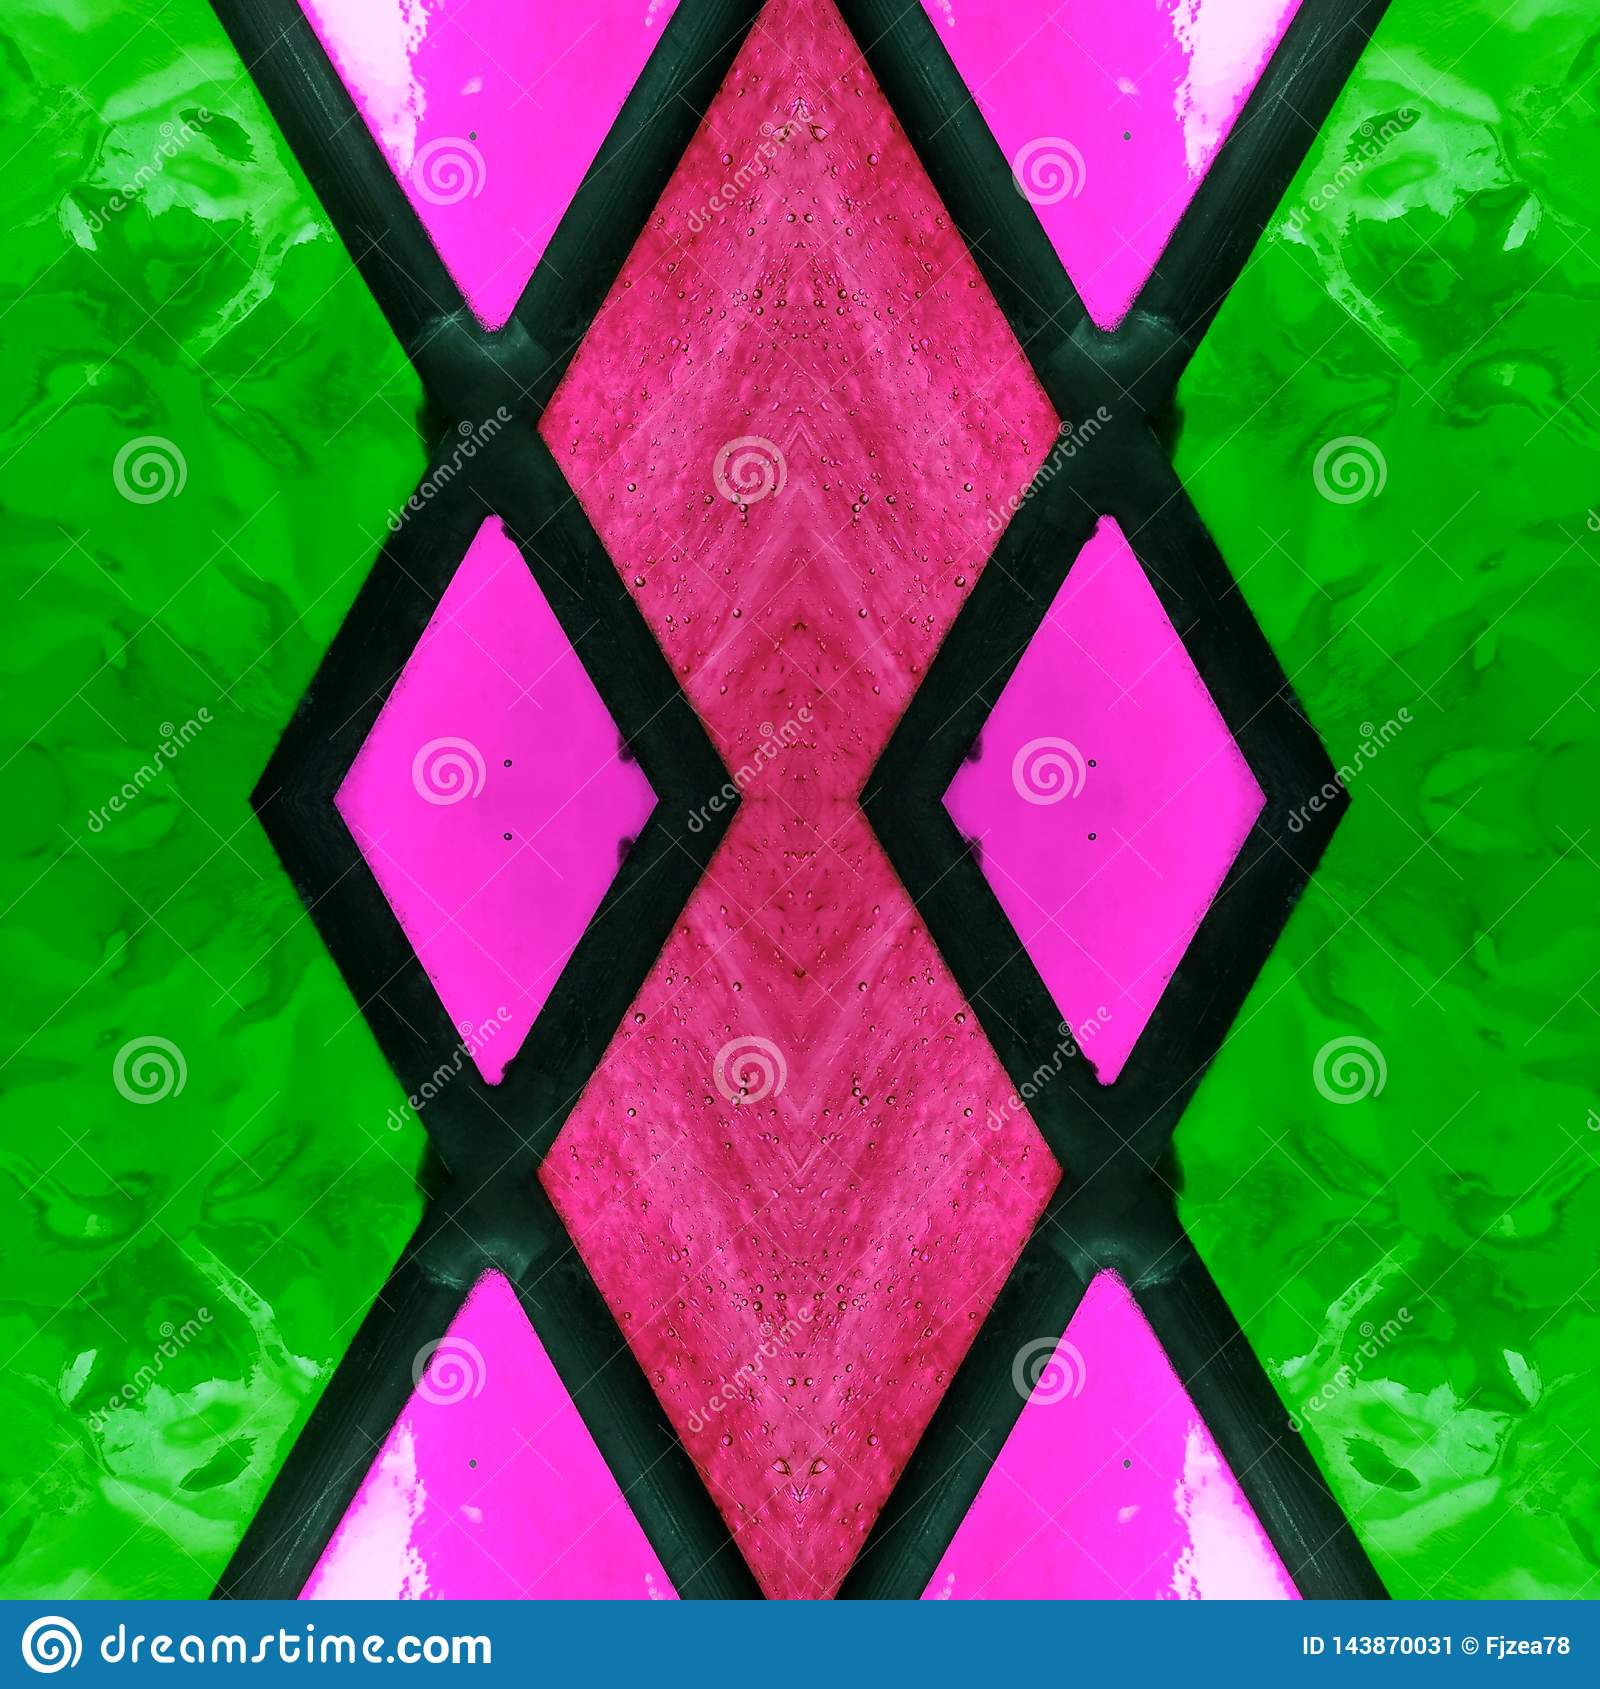 Abstract Design With Stained Glass In Green Pink And Red Colors Background And Texture Stock Illustration Illustration Of Geometric Simple 143870031